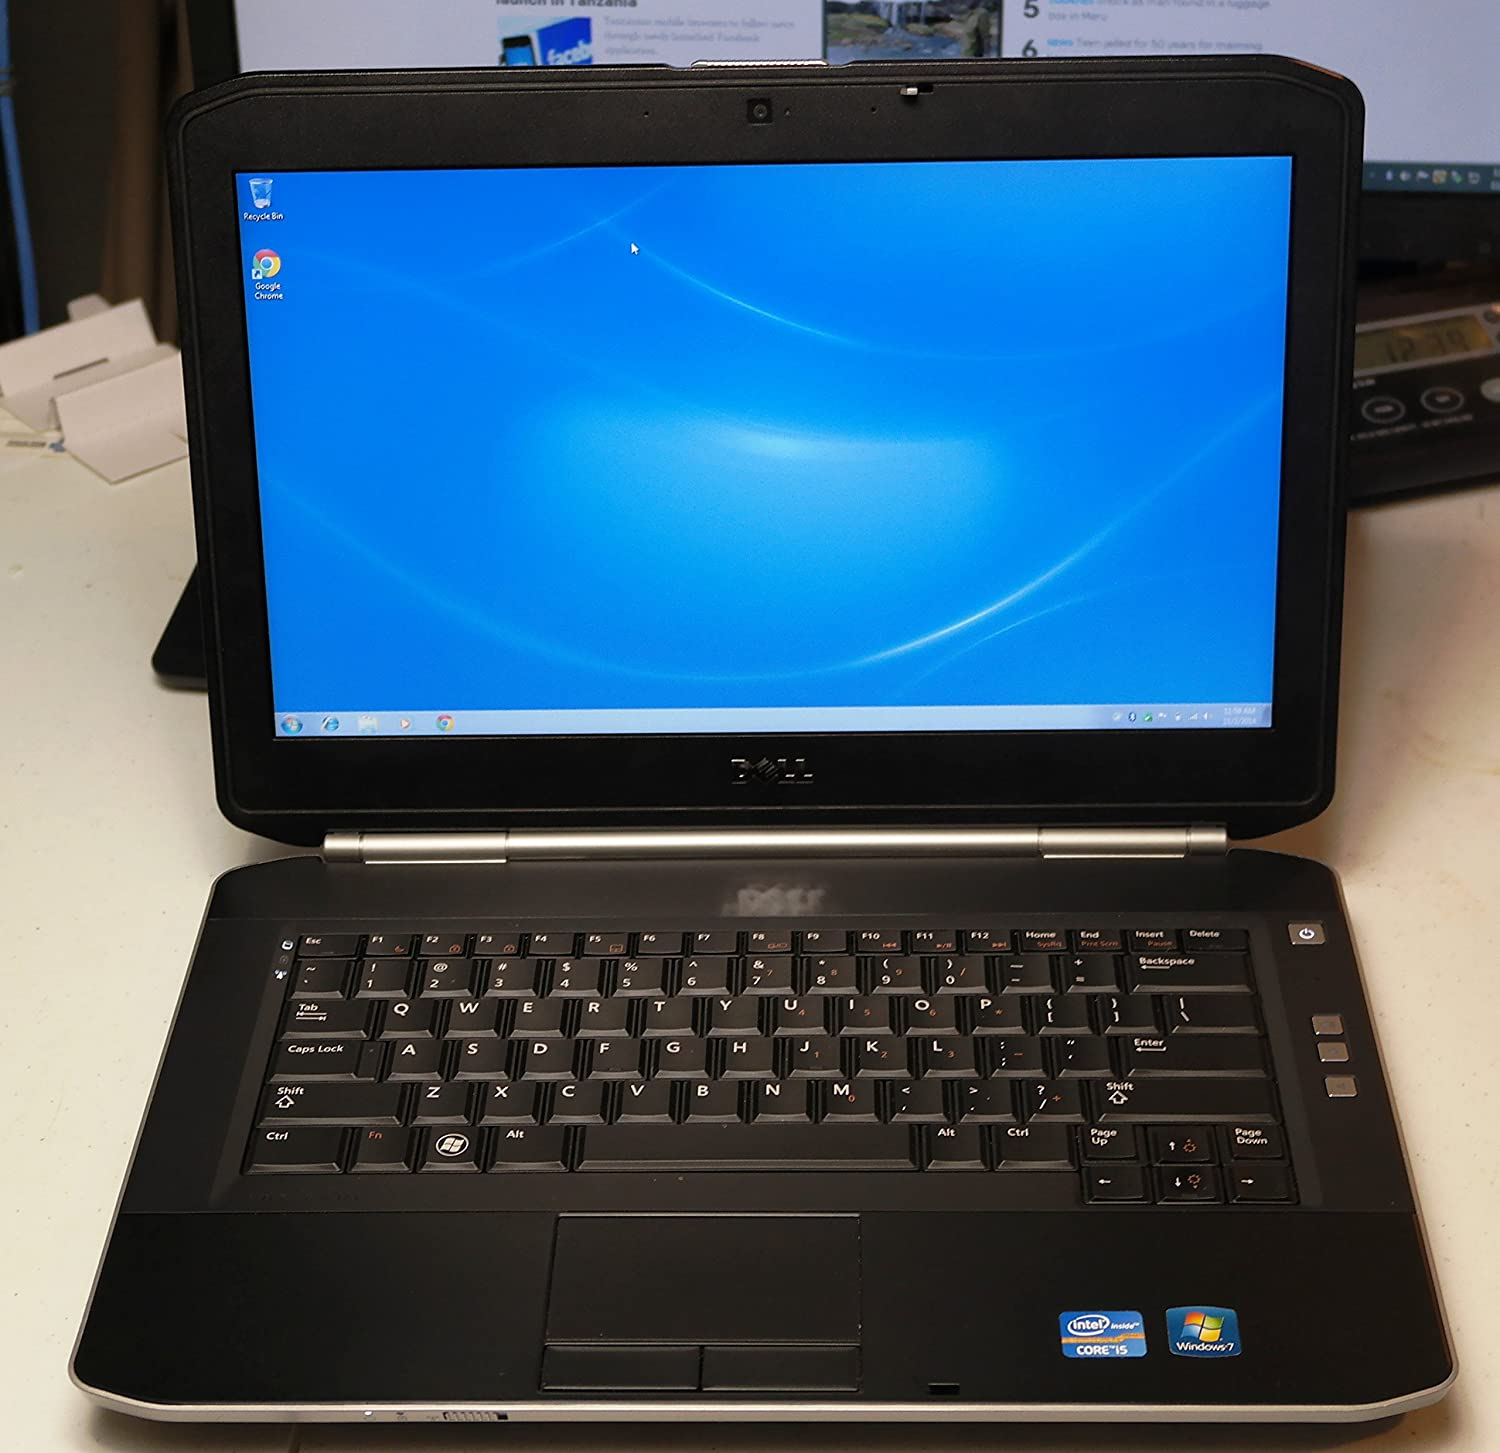 "Latitude E5420 14"" LED Notebook Core i5 2.50GHz 2GB DDR3 SDRAM 320GB HDD DVD-Writer 32-bit Windows 7 Professional"